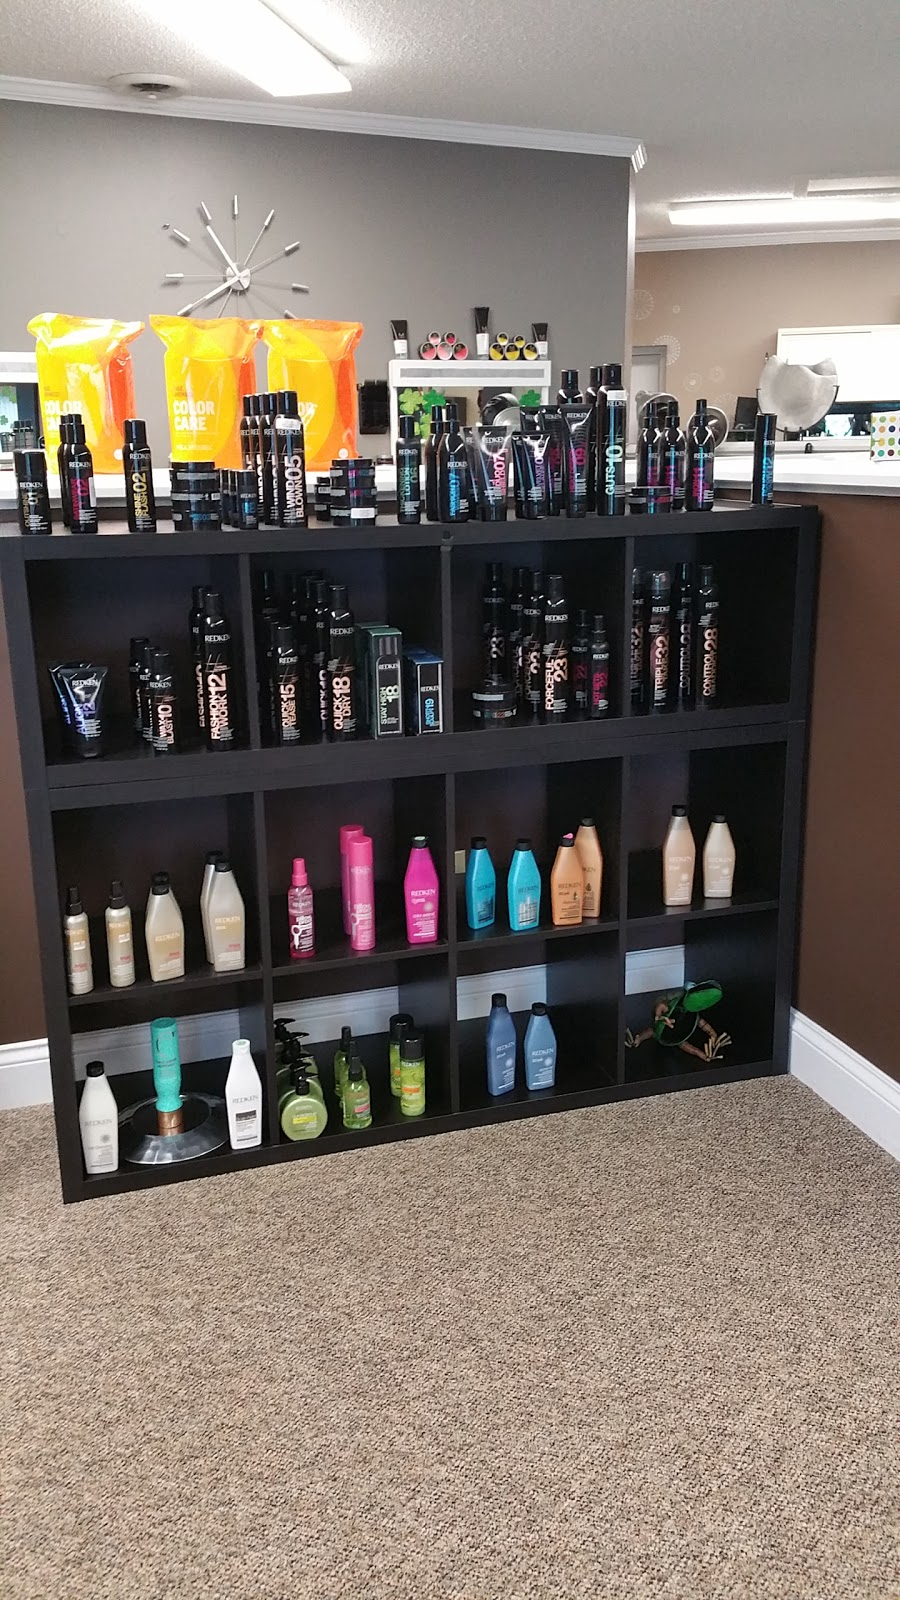 Hair Shaak - hair care  | Photo 3 of 7 | Address: 172 Deanna Dr, Lowell, IN 46356, USA | Phone: (219) 696-6900